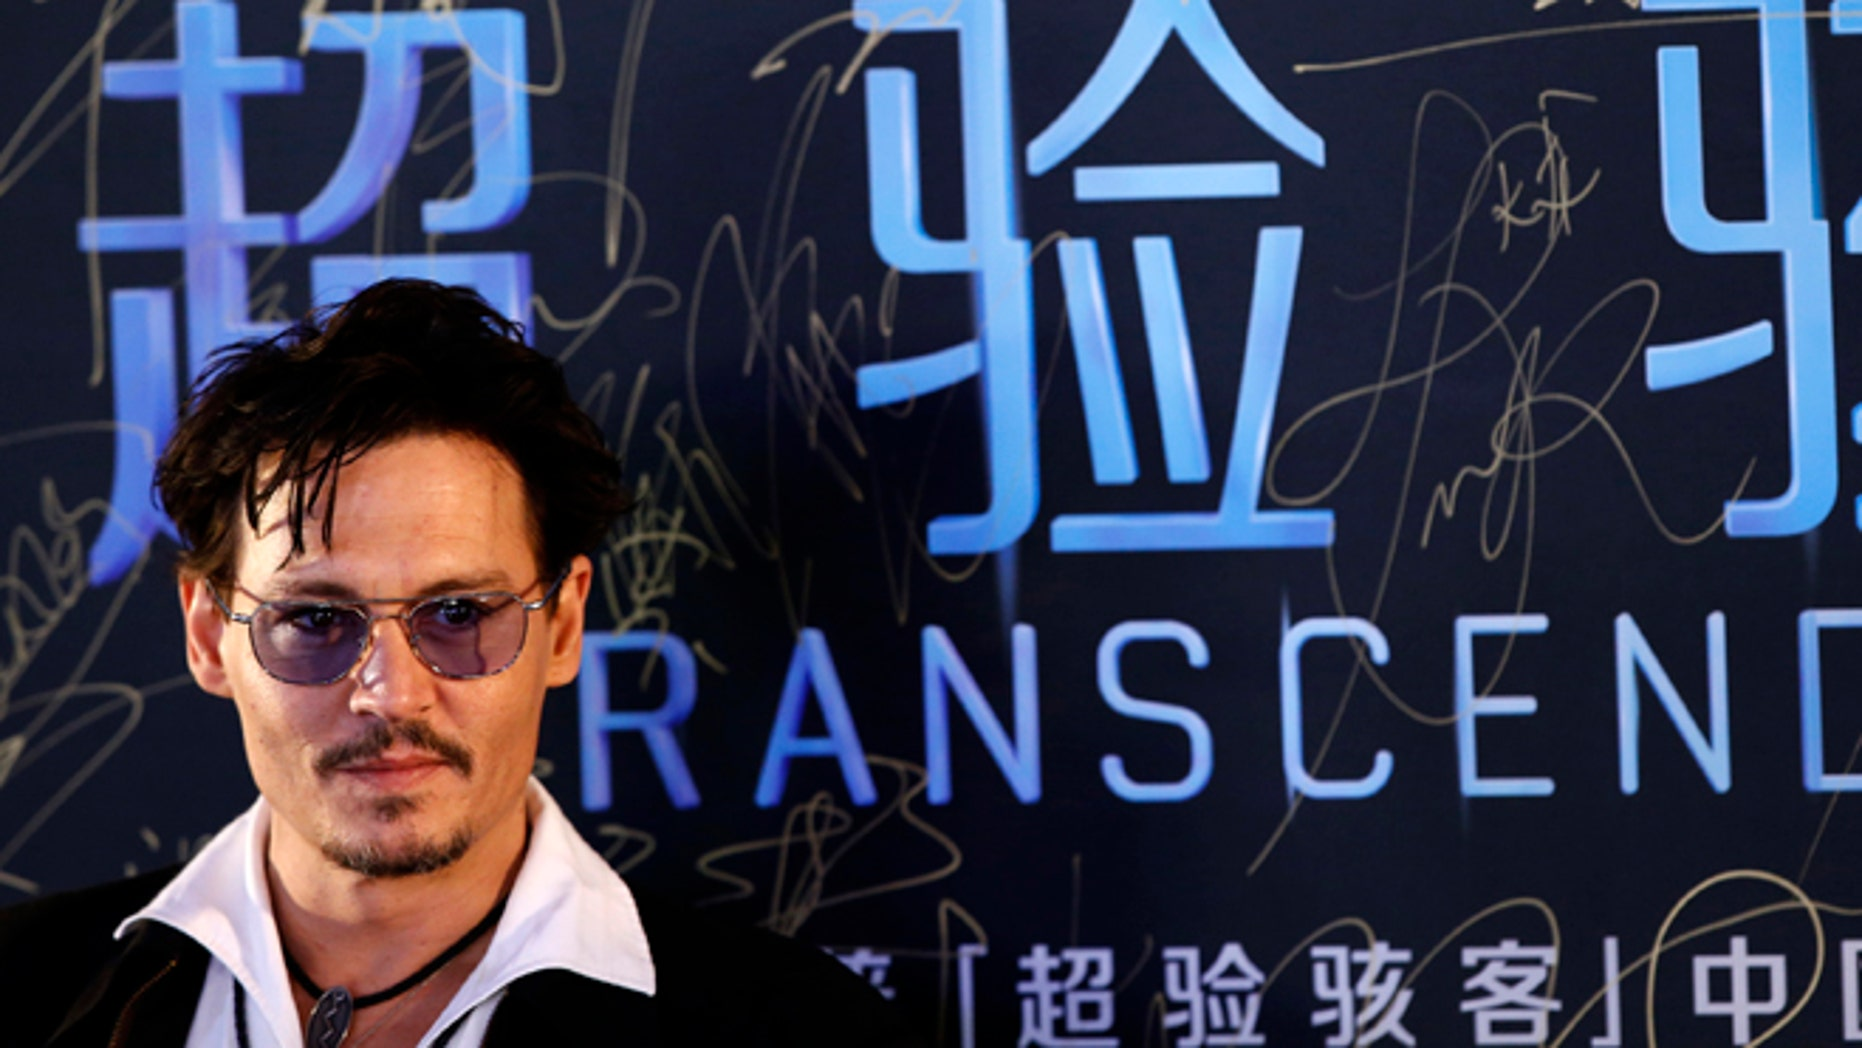 """Actor Johnny Depp attends a red carpet event to promote his new movie """"Transcendence"""", on his first visit to China in Beijing March 31, 2014.REUTERS/Kim Kyung-Hoon (CHINA - Tags: ENTERTAINMENT) - RTR3JBV1"""